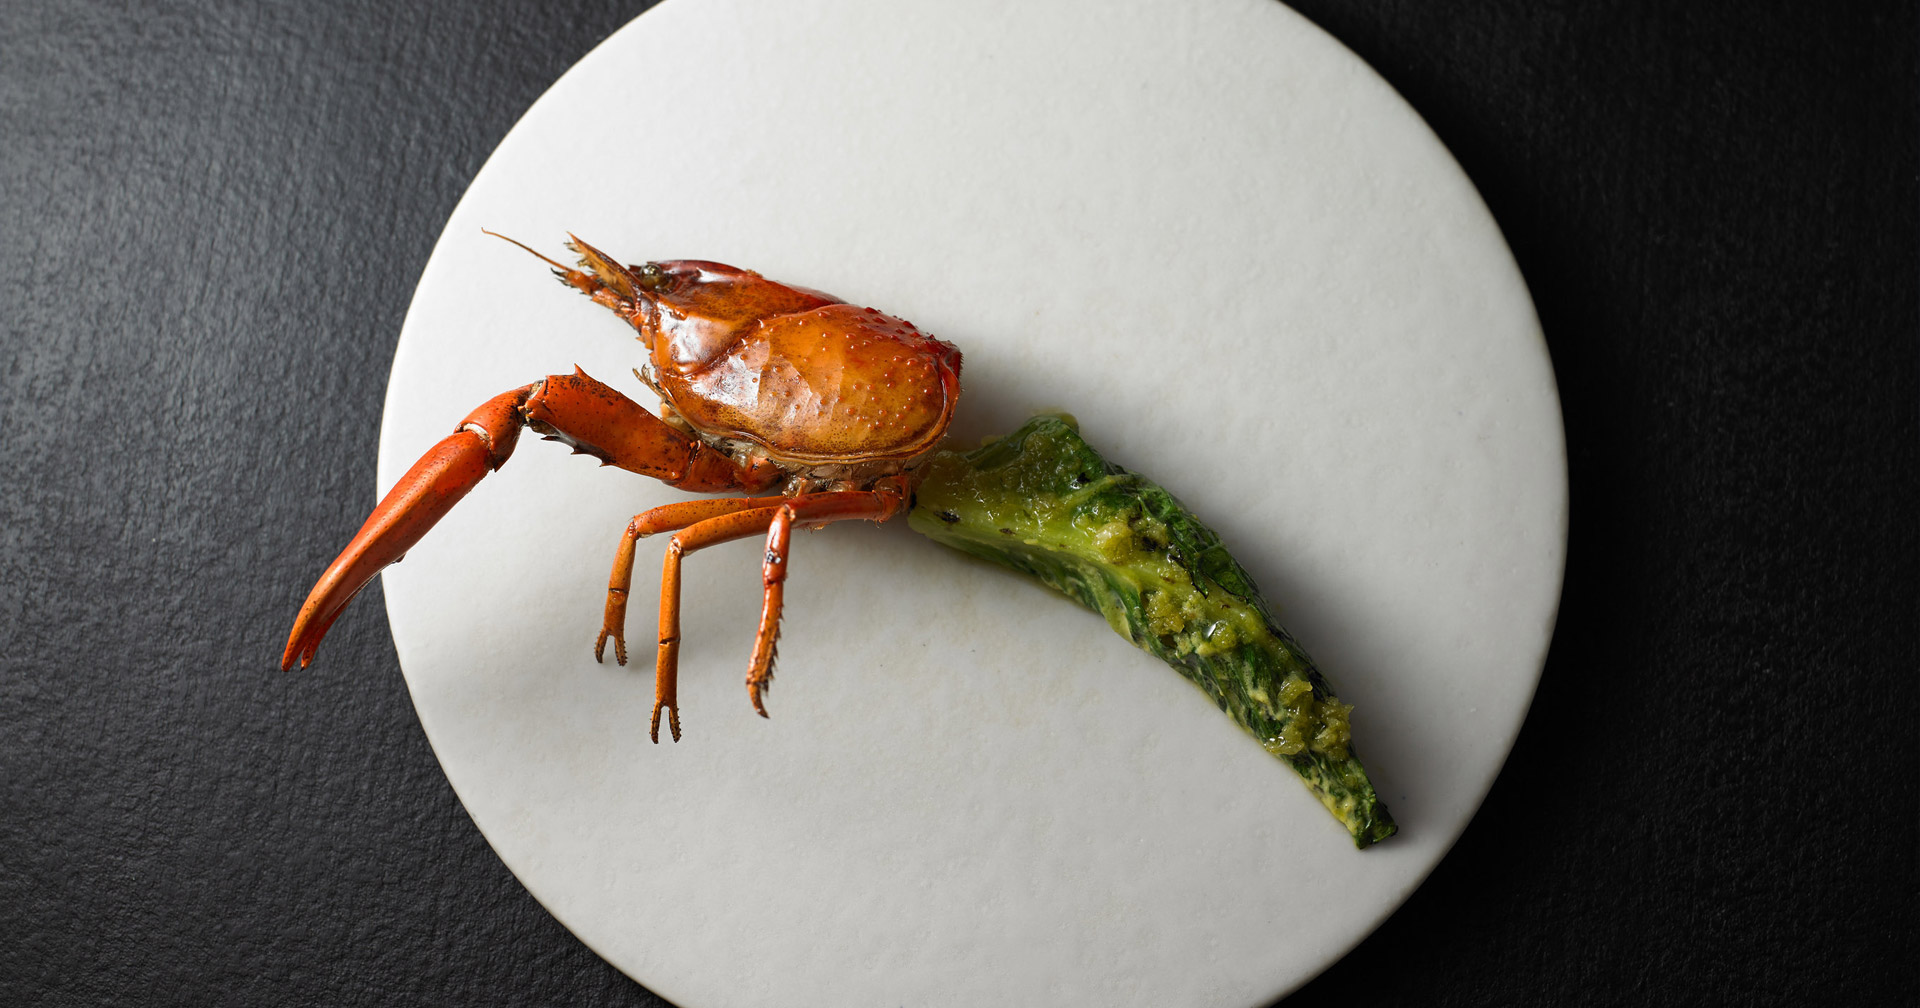 Swallowing Our History (Matters Journal)